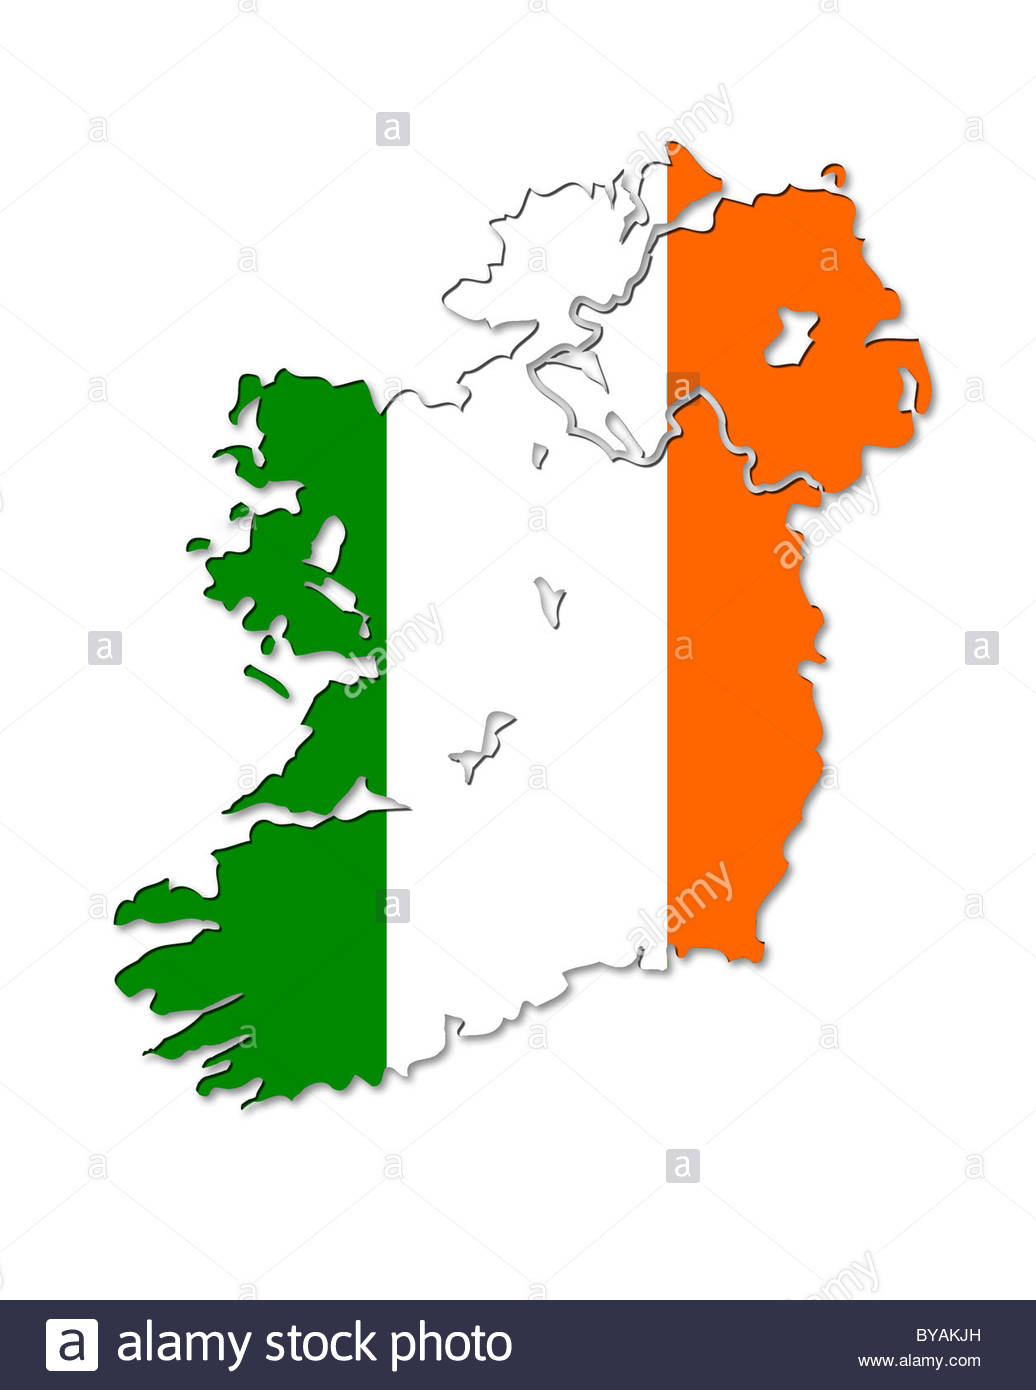 Map Of Ireland Download.The Best Free Ireland Silhouette Images Download From 70 Free